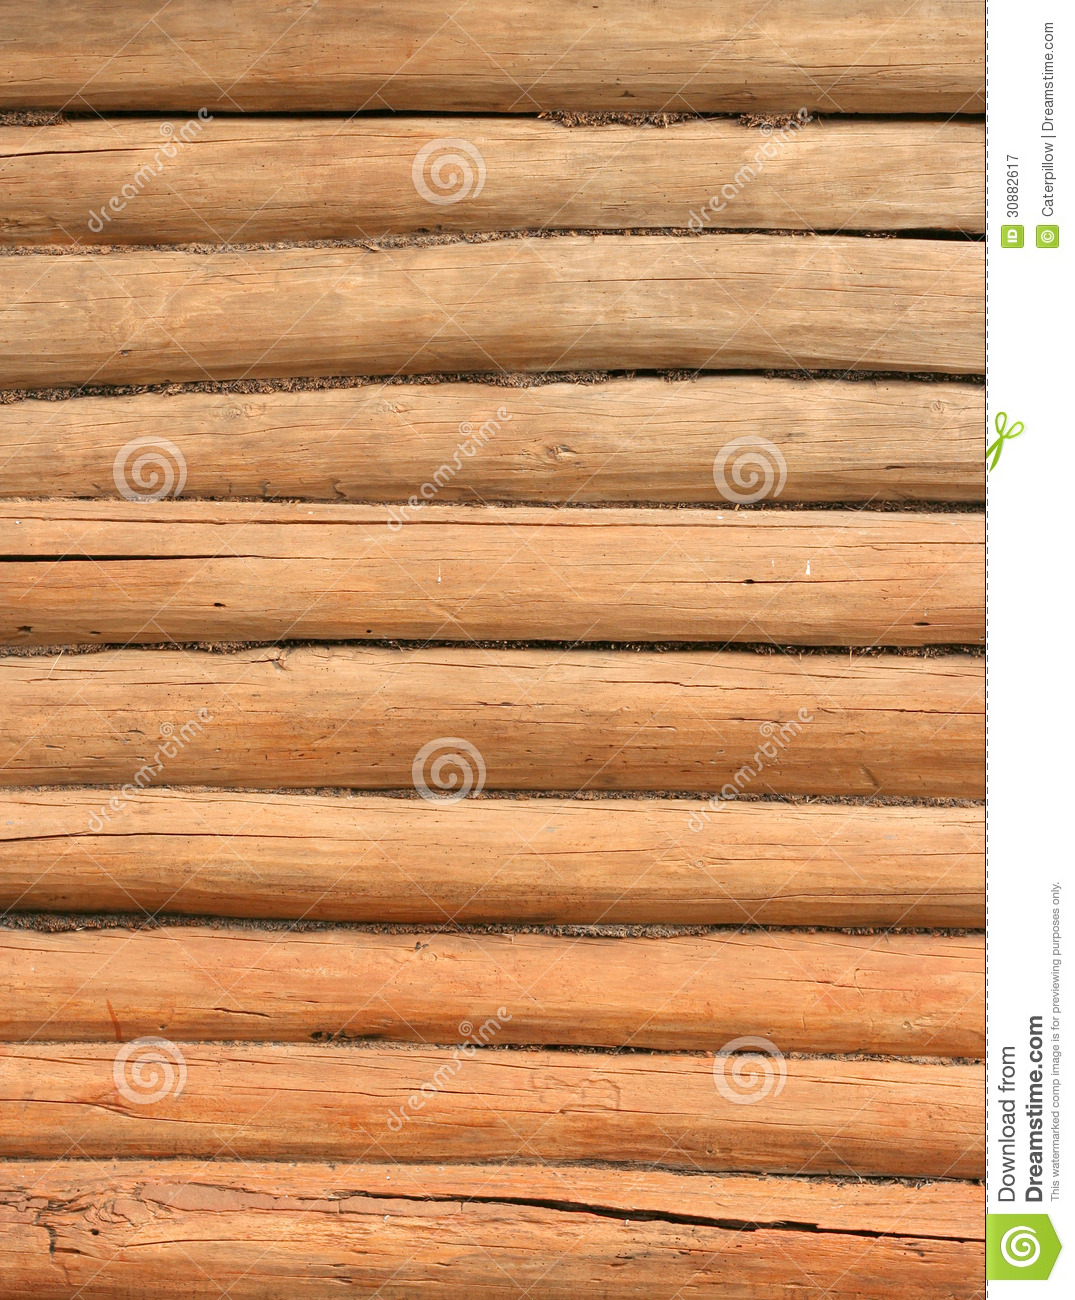 texture en bois de mur de rondin verticale image stock image du abstrait outdoors 30882617. Black Bedroom Furniture Sets. Home Design Ideas